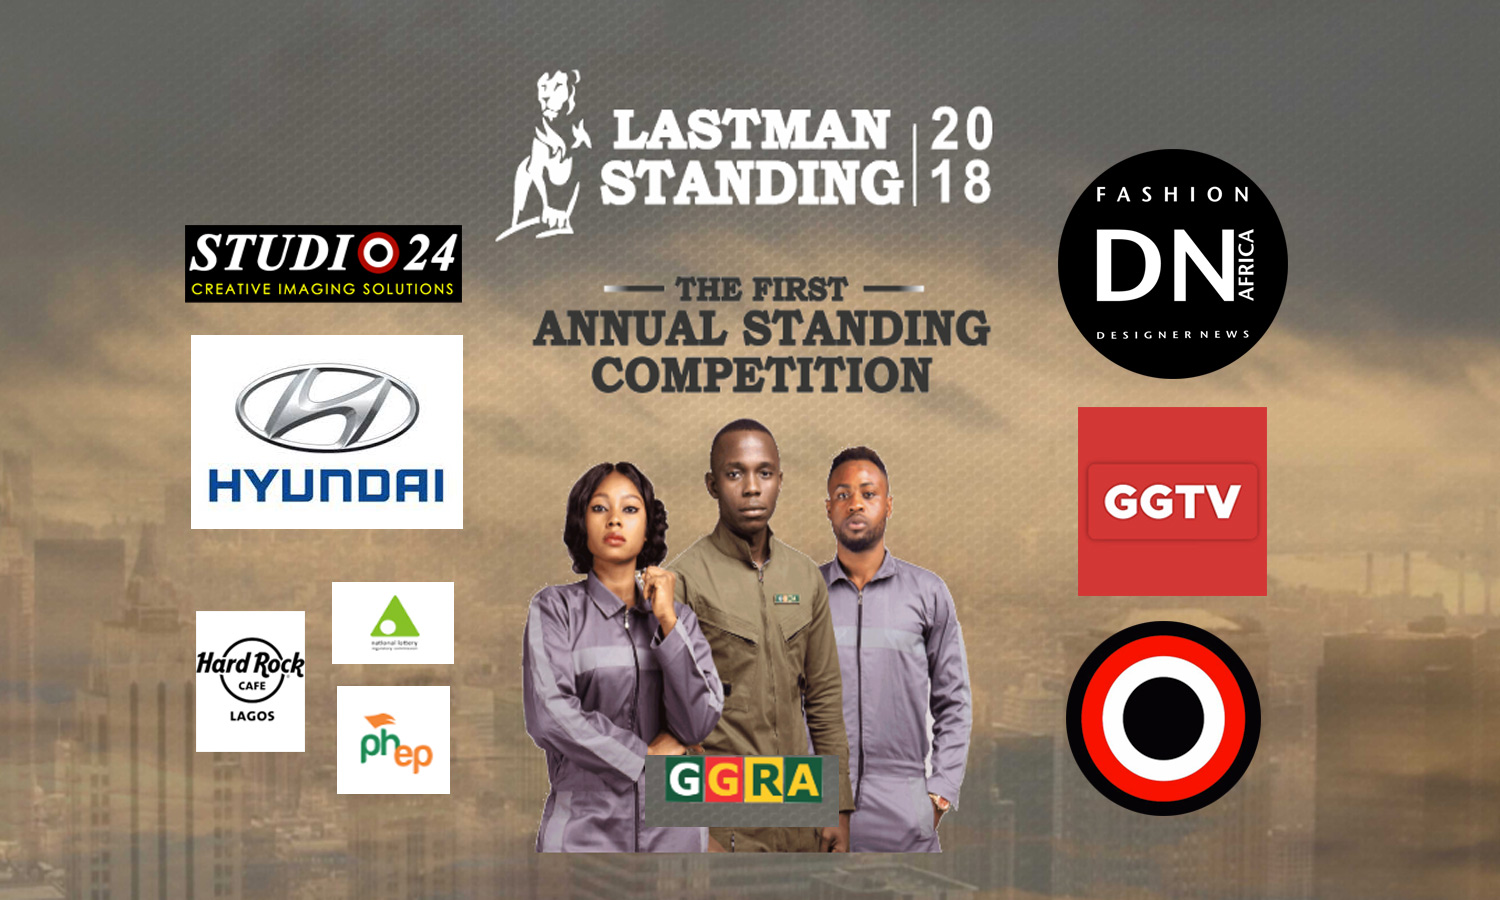 AFRICAN FASHION MAGAZINE - LAST MAN STANDING BY GGRA FIRST EDITION - HARD ROCK CAFE LAGOS NIGERIA - Media Partner DN MAG, DN AFRICA -STUDIO 24 NIGERIA - STUDIO 24 INTERNATIONAL